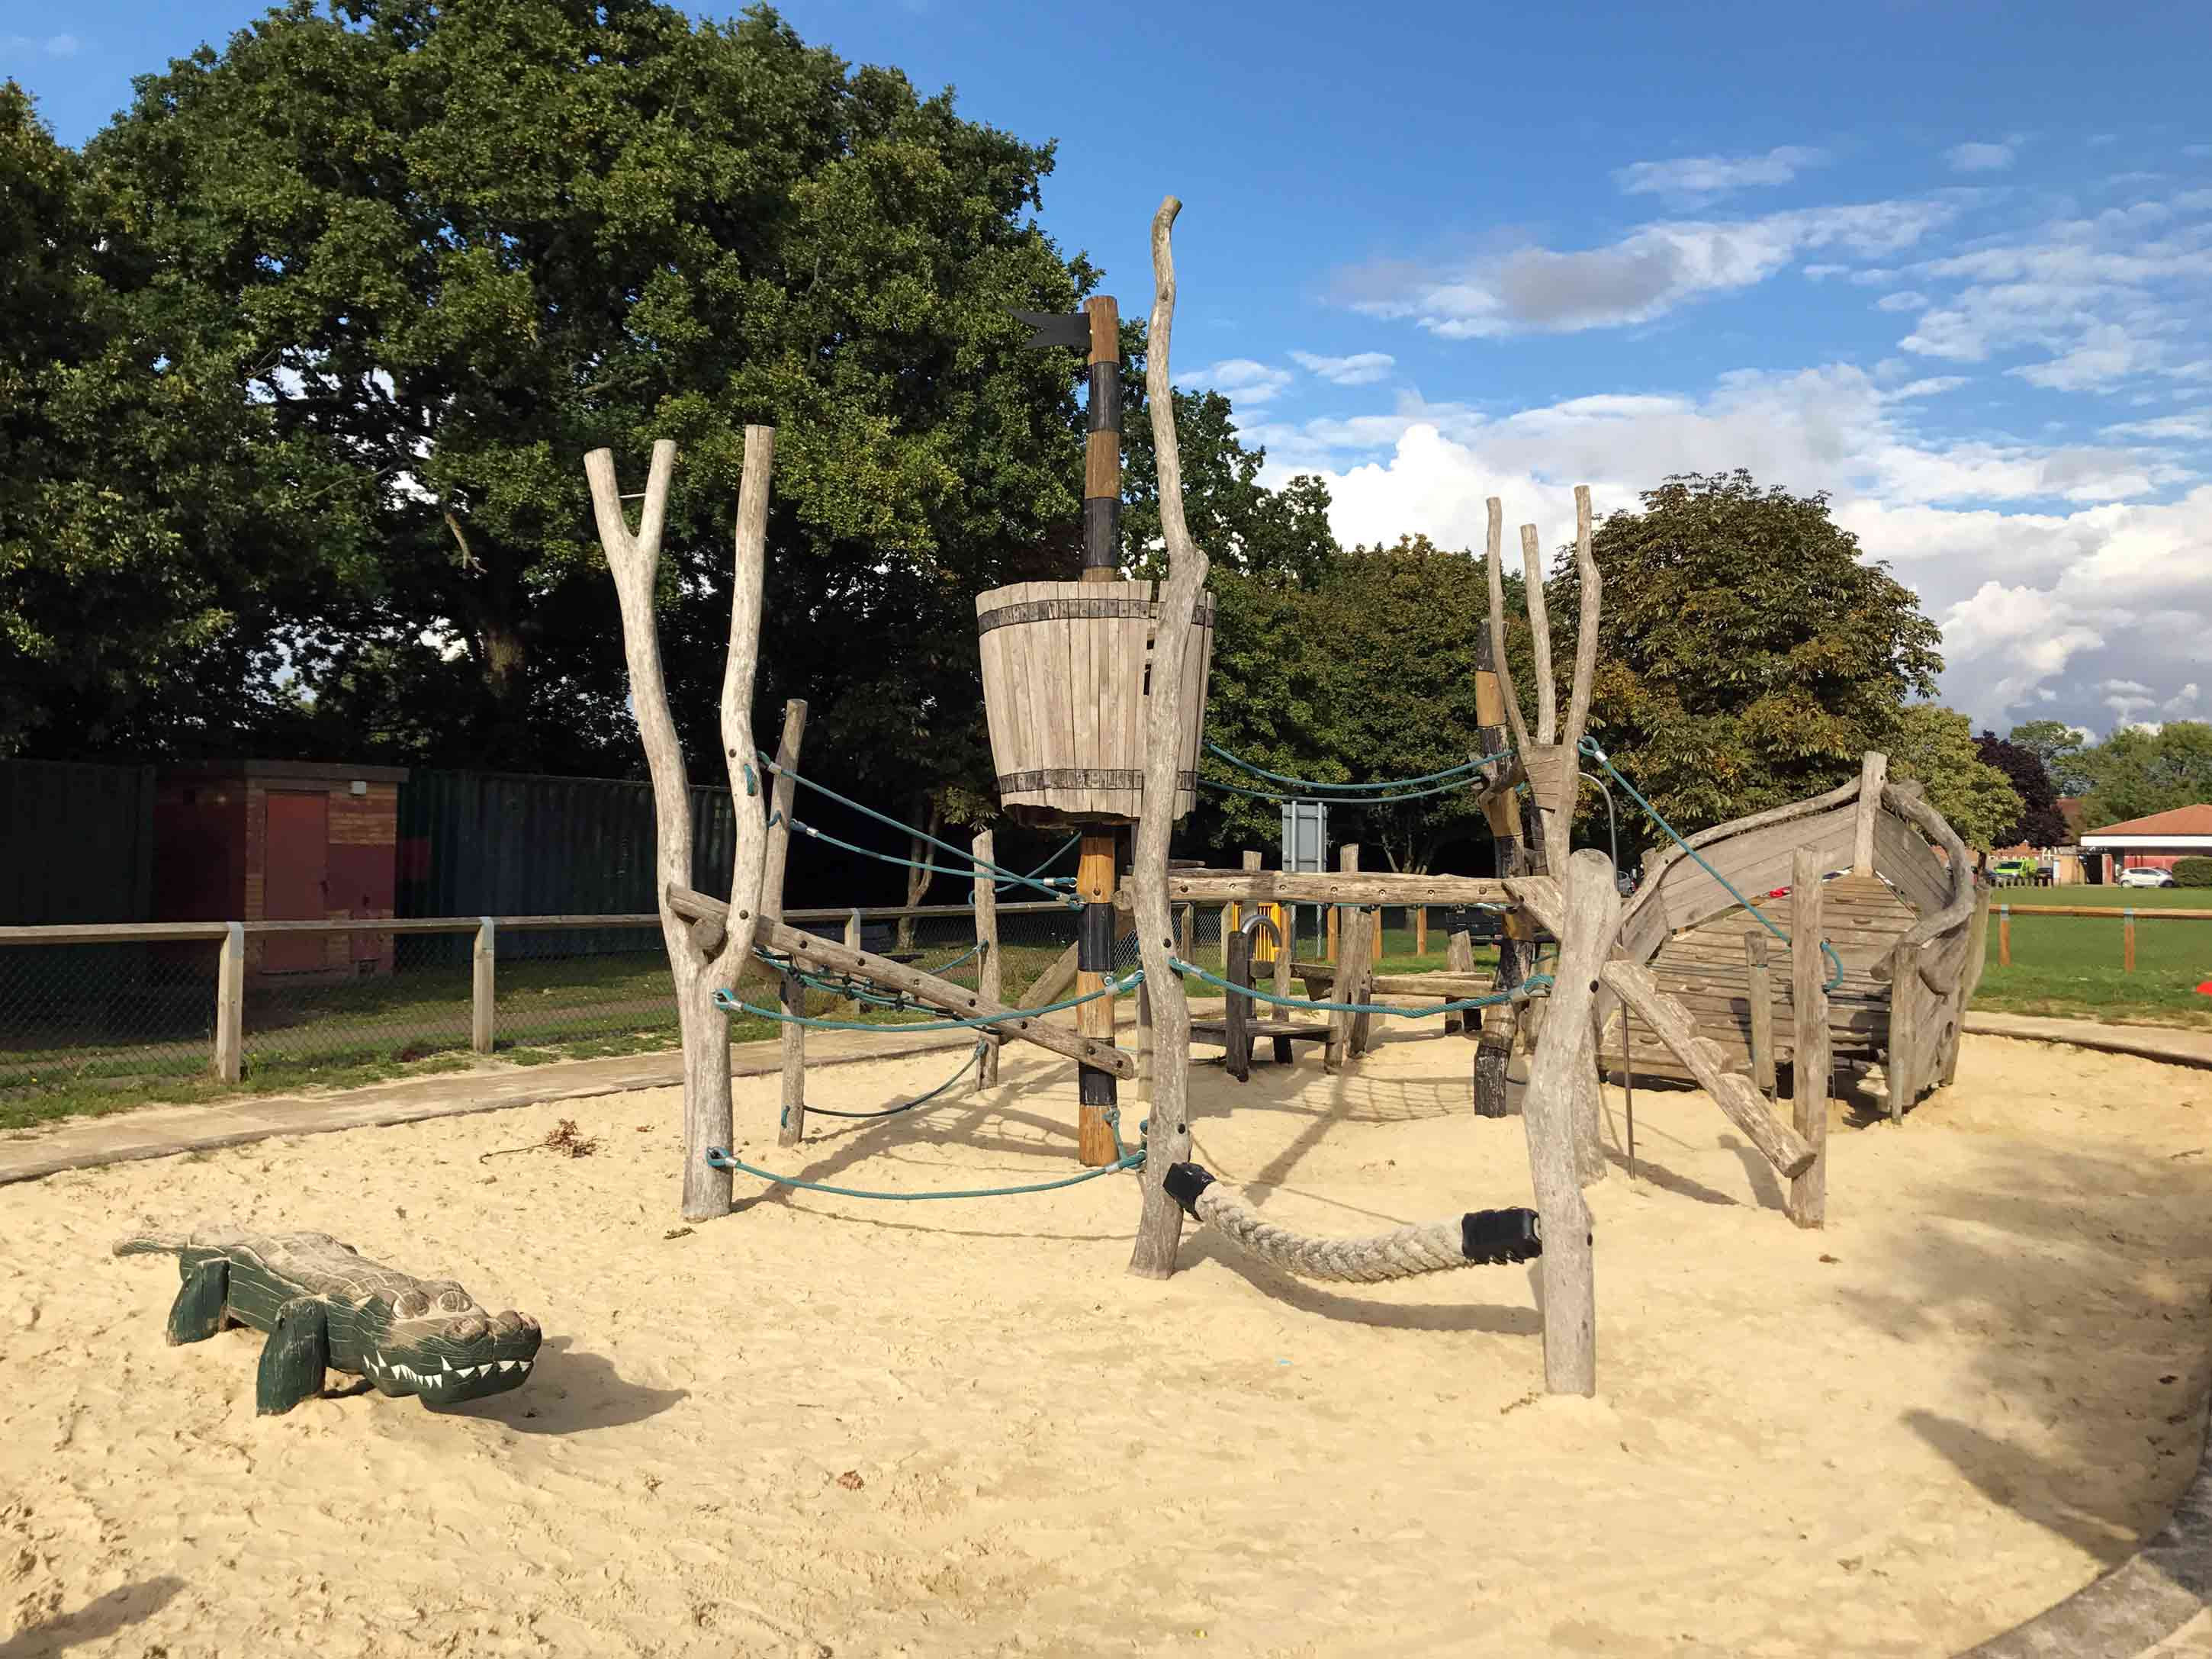 Plunder Treasure at Byfleet Recreation Ground and Play Area